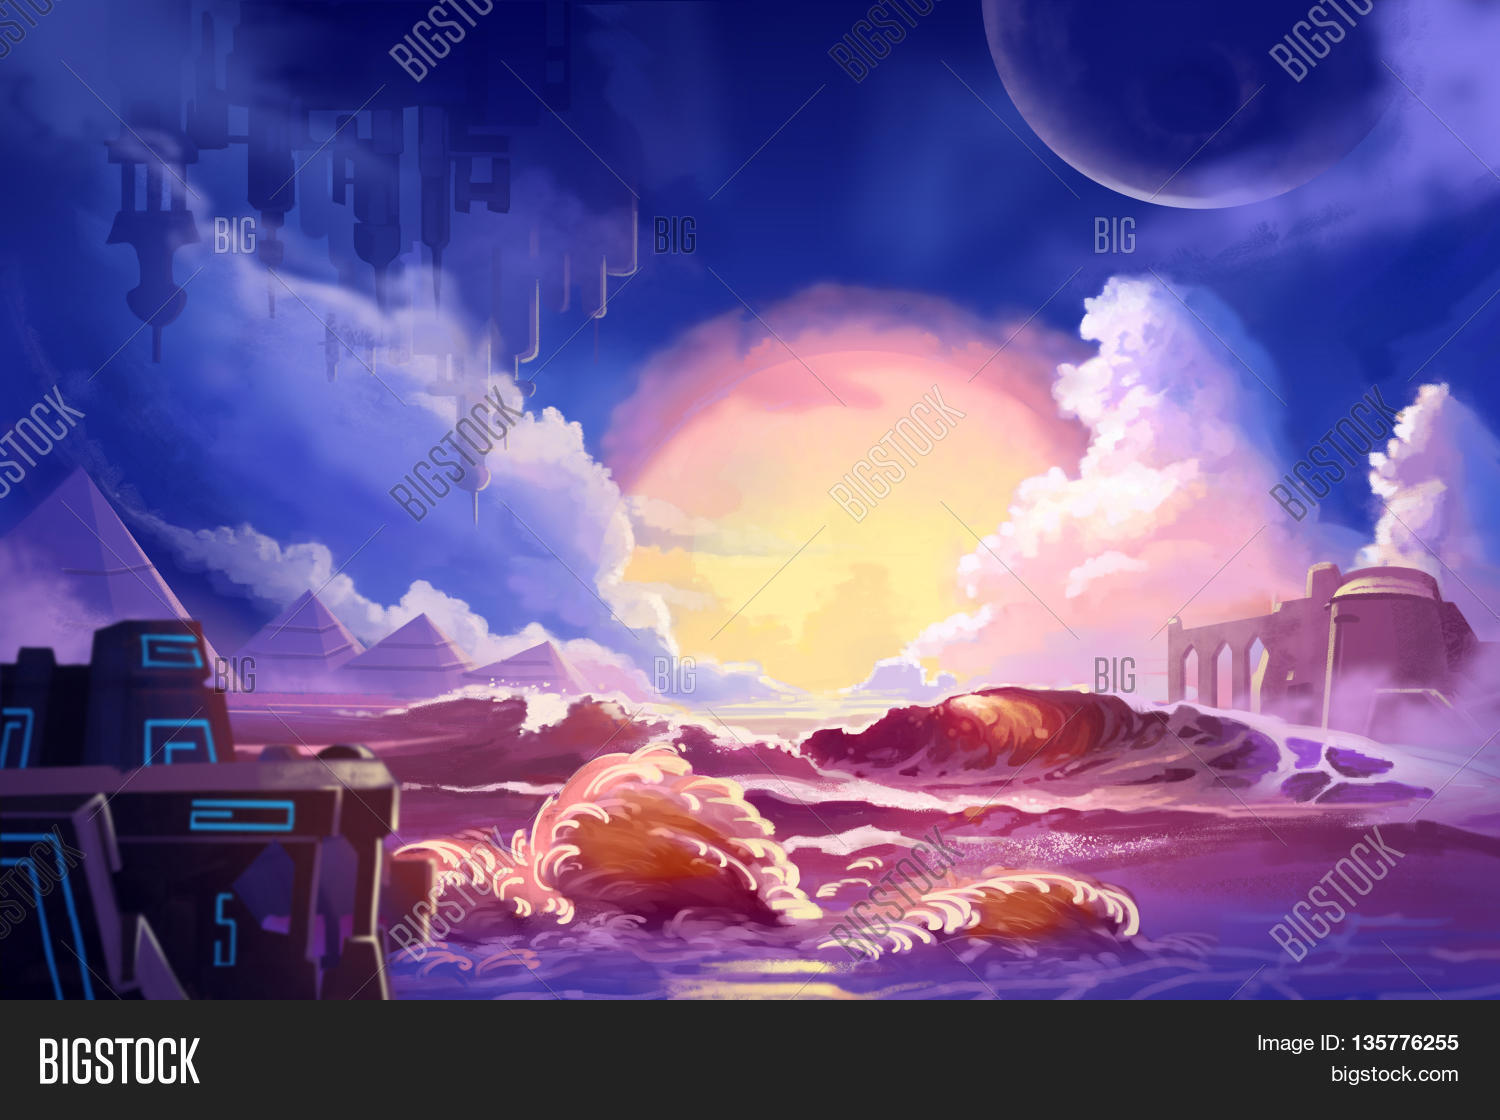 Game with watercolor - Watercolor Style Video Game Digital Cg Artwork Concept Art Illustration Set 4 The Alien Planet